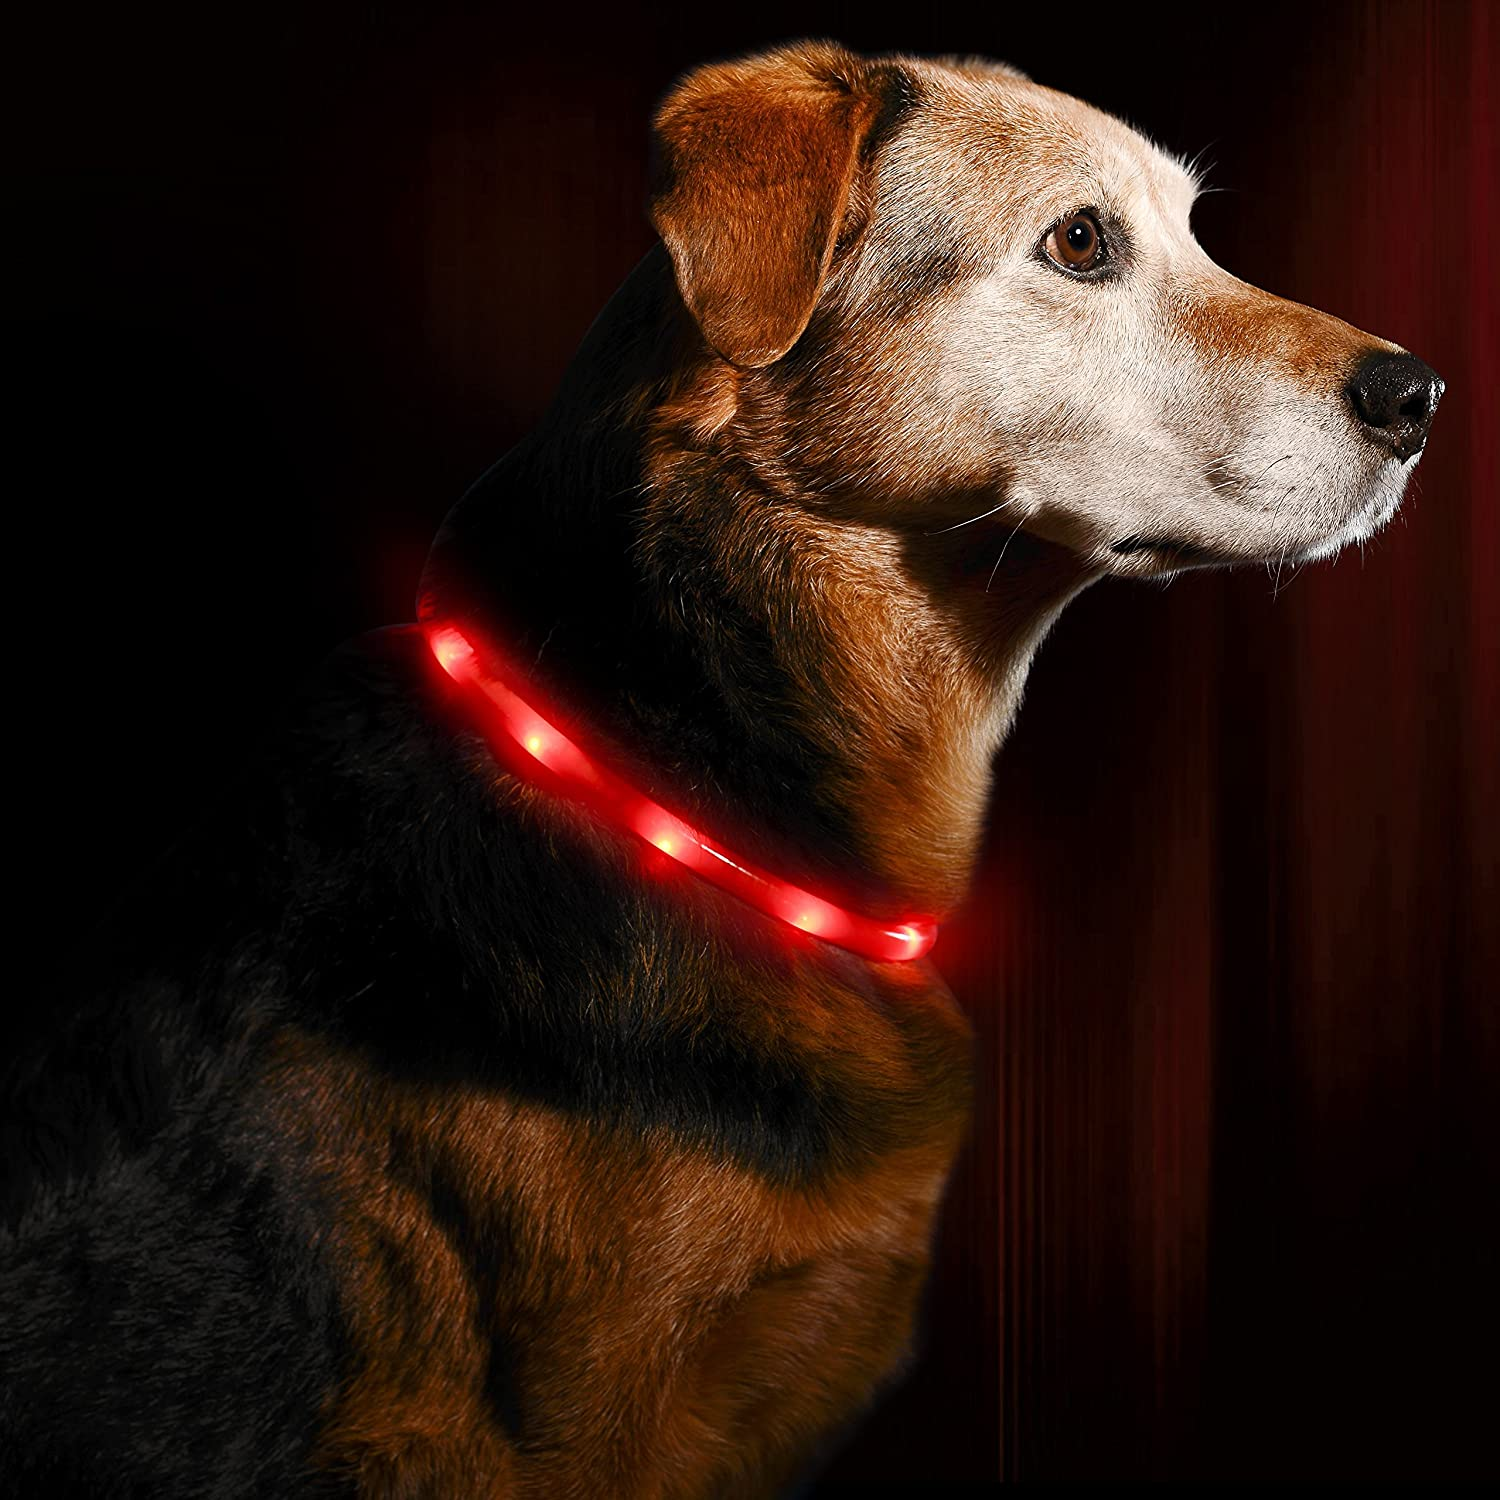 Lava Red LED Dog Necklace Collar USB Rechargeable Loop Available in 6 colors Makes Your Dog Visible, Safe & Seen